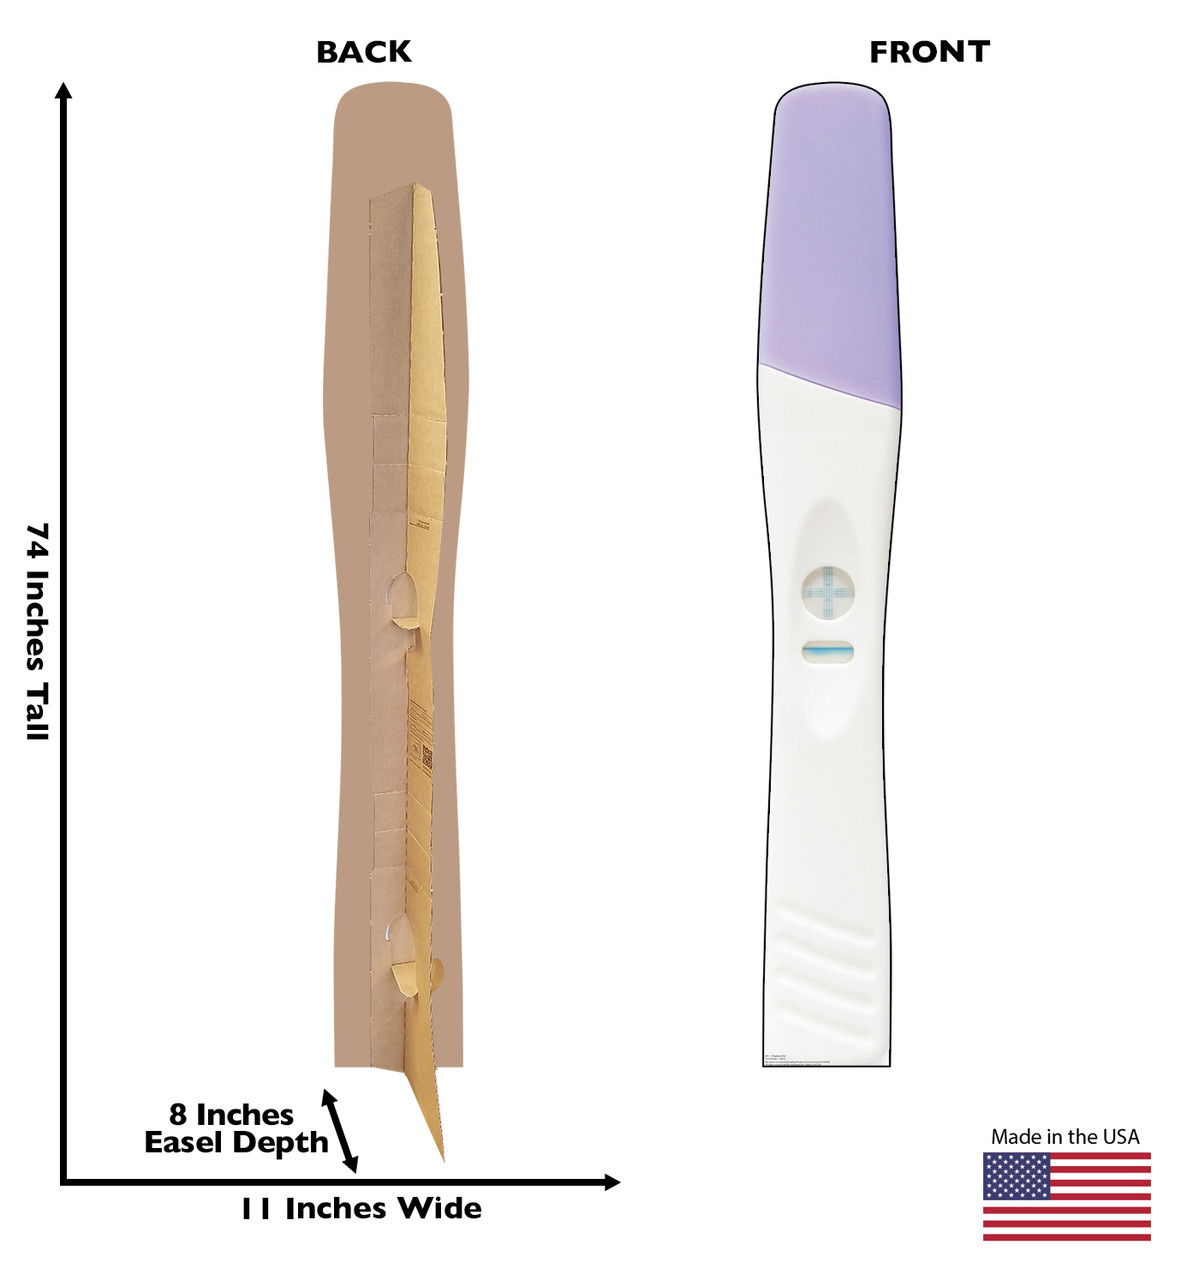 Life-size cardboard standee of a + Pregnancy Test with back and front dimensions.